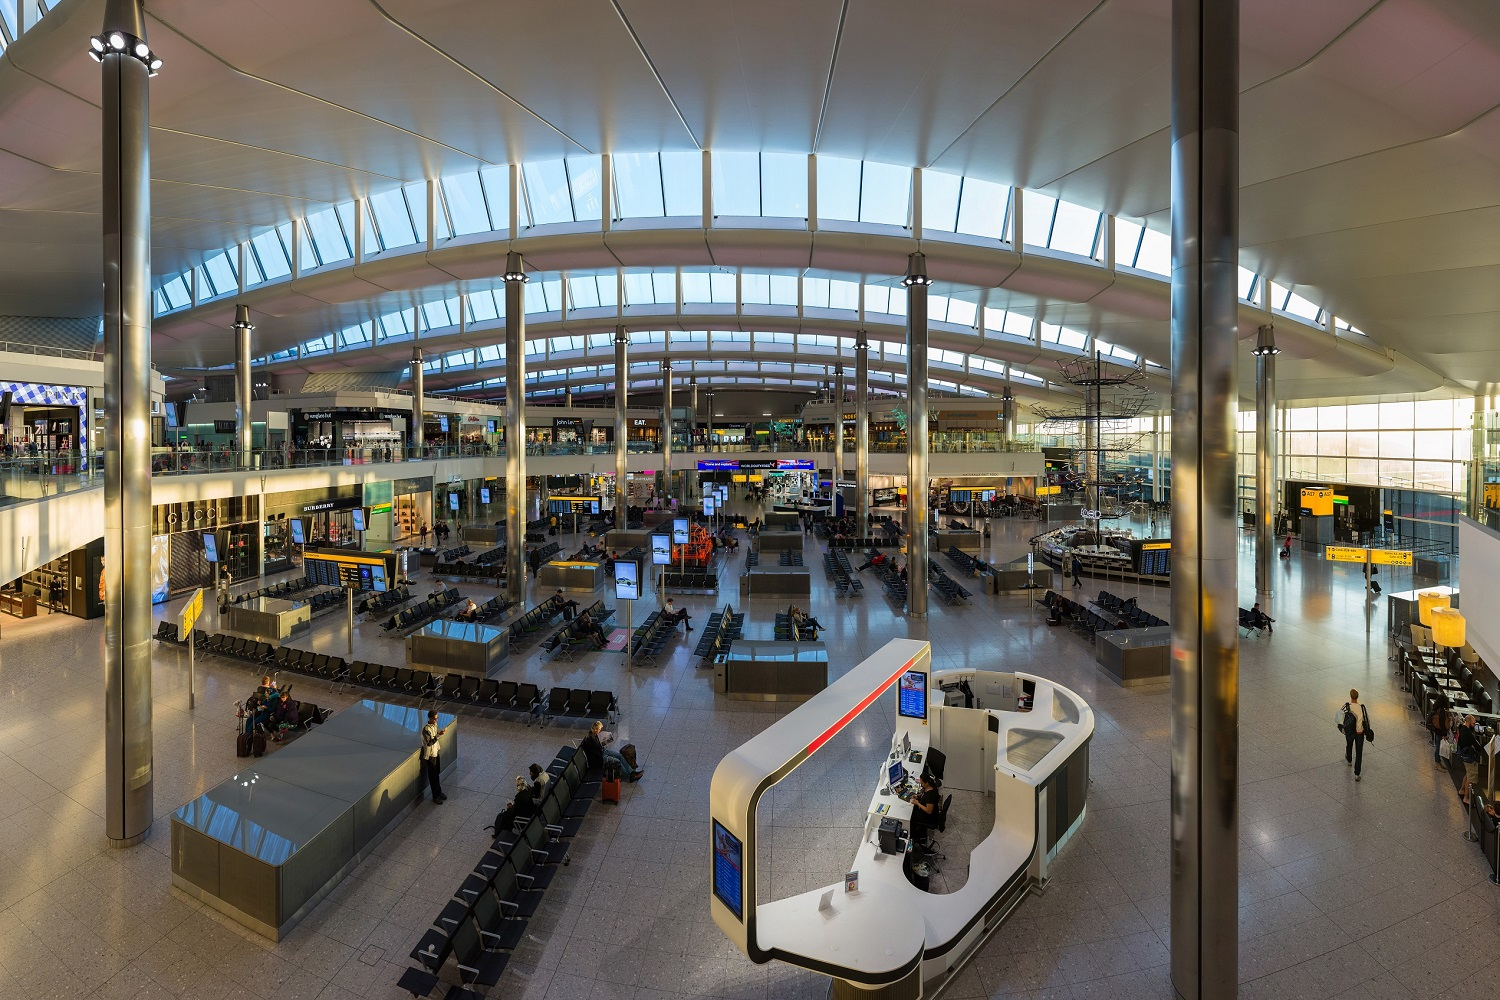 Immagine dell'interno del terminal 2 del Heathrow Airport.